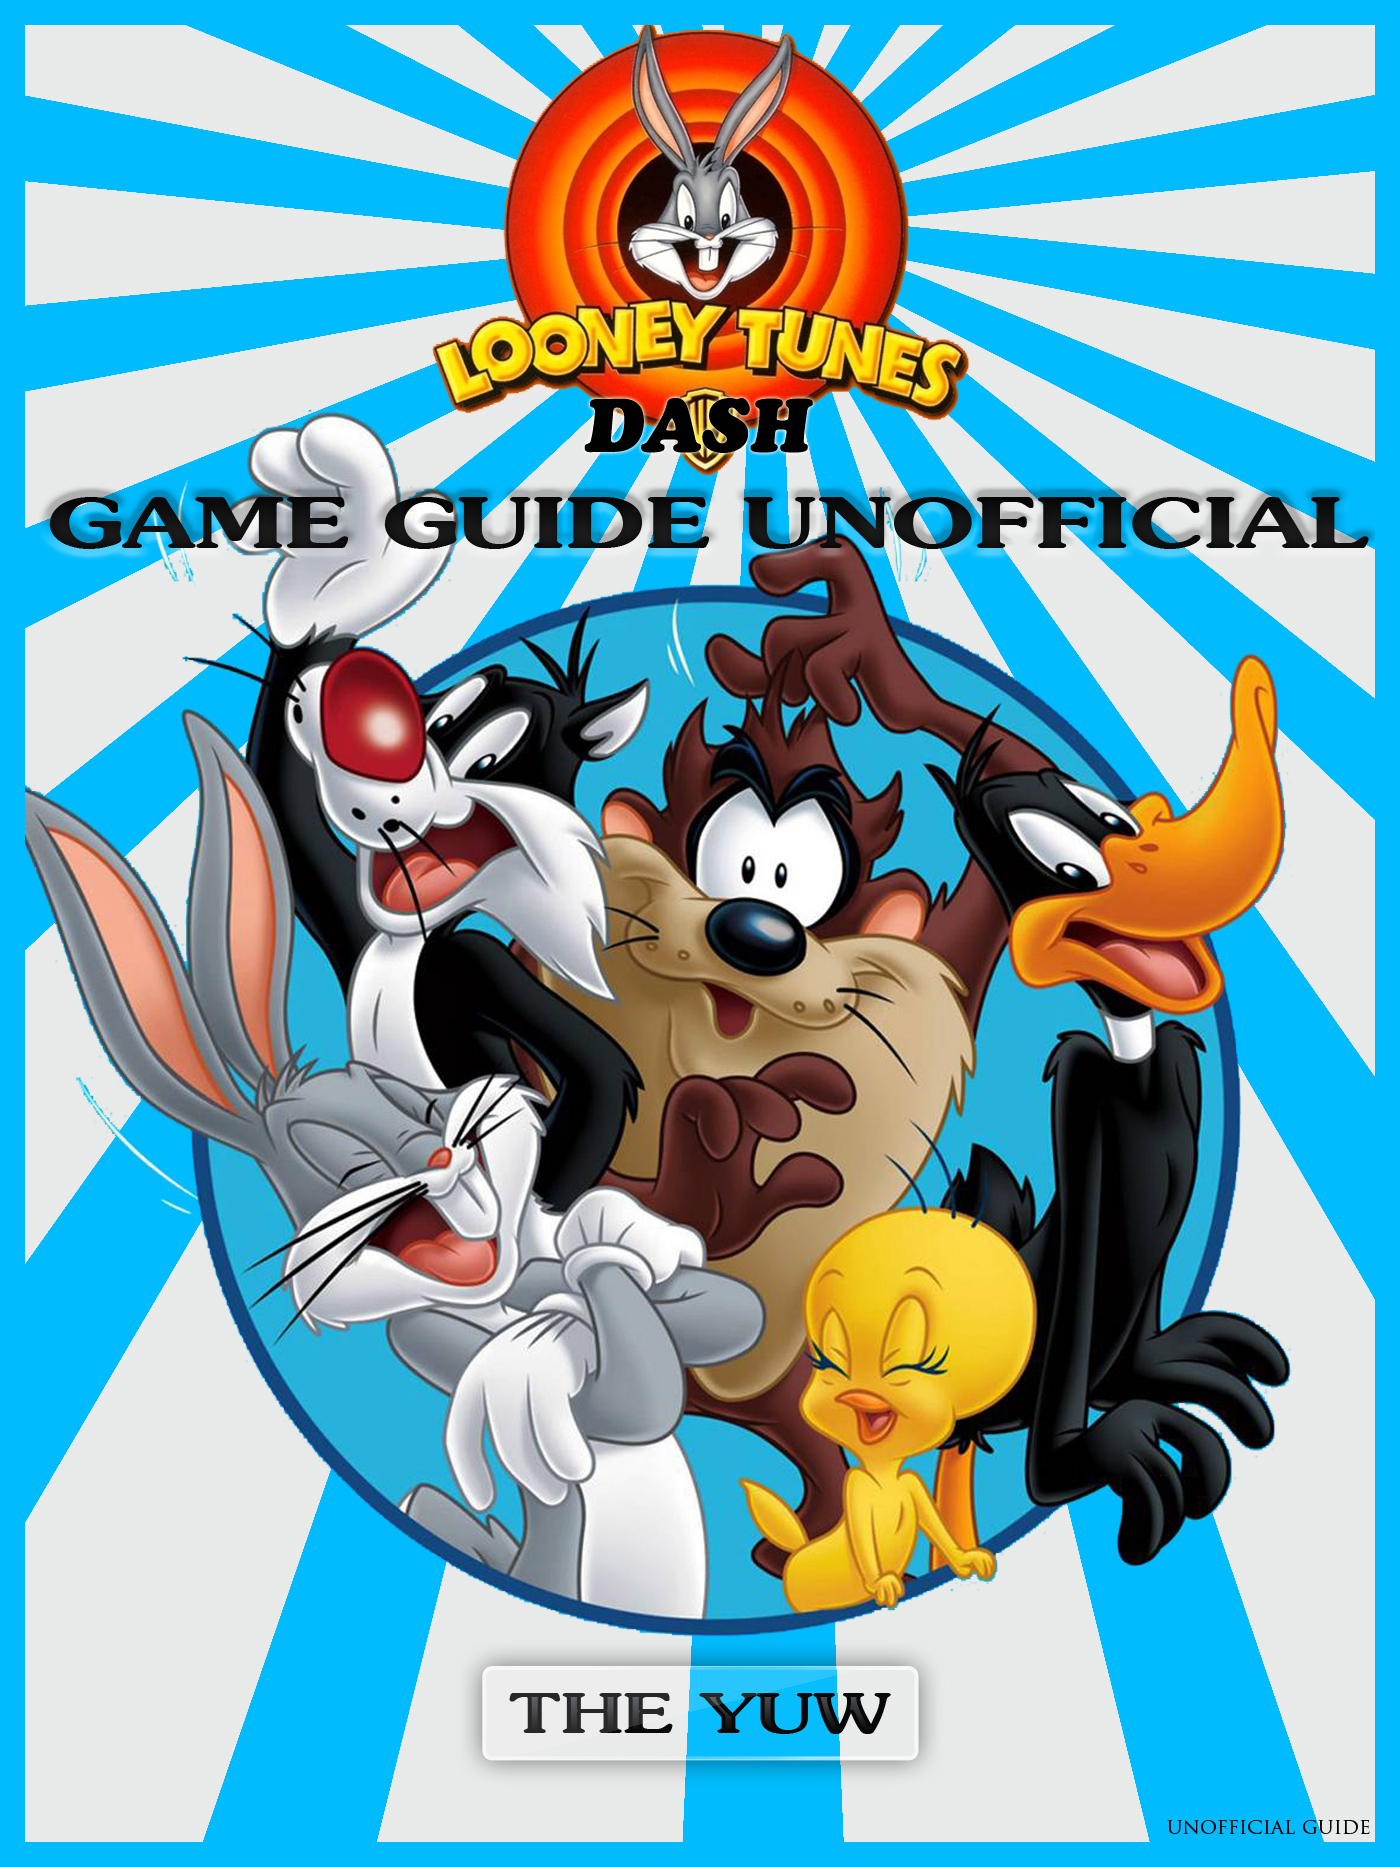 Looney tunes dash! game guide unofficial